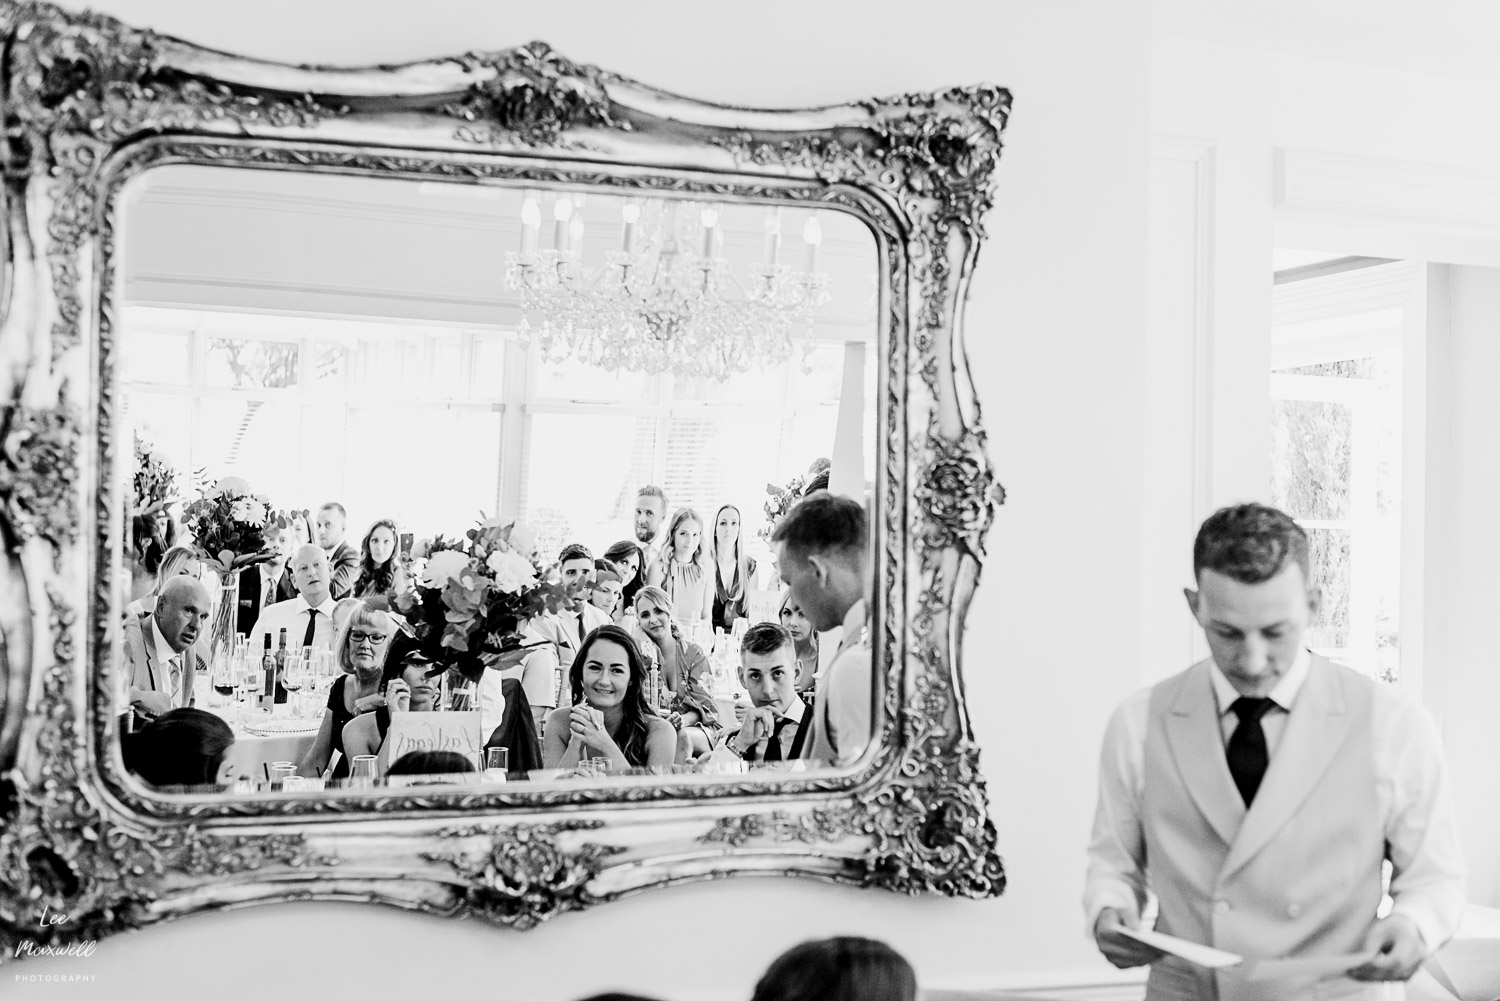 Mirror reflection of groom's speech